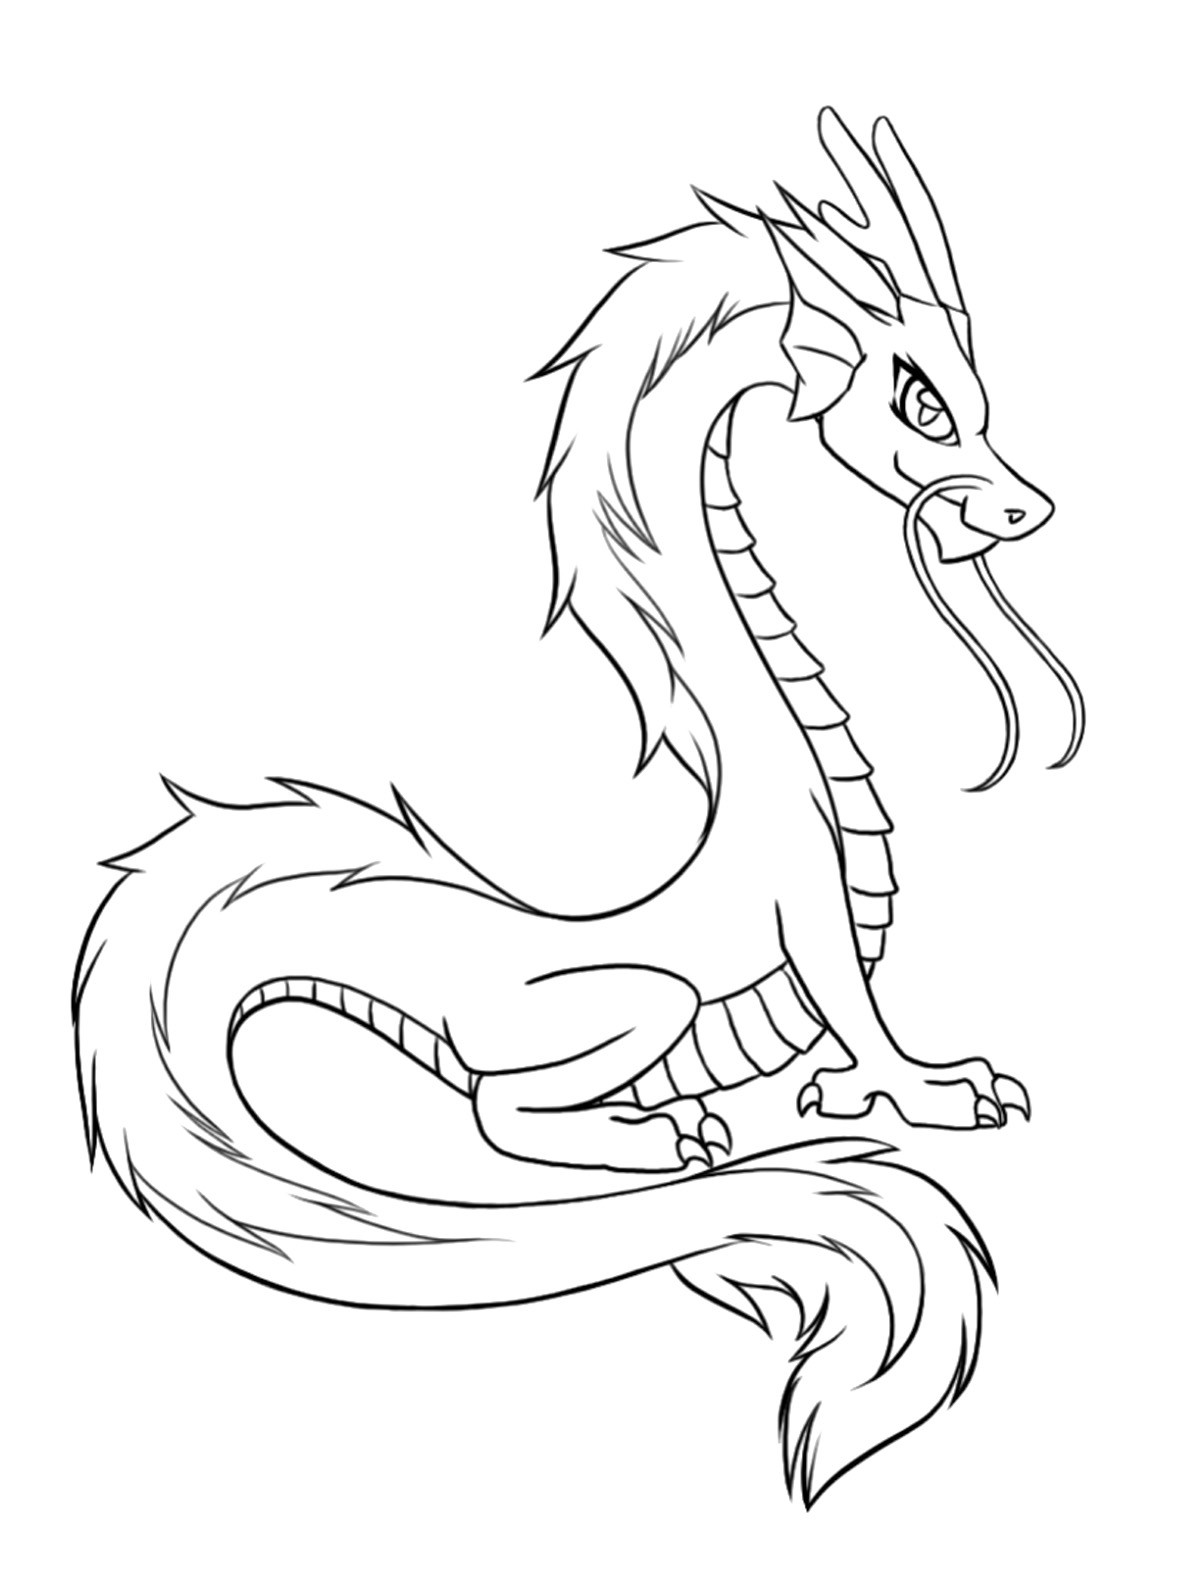 Printable Dragon Coloring Pages  dragon coloring pages printable 01